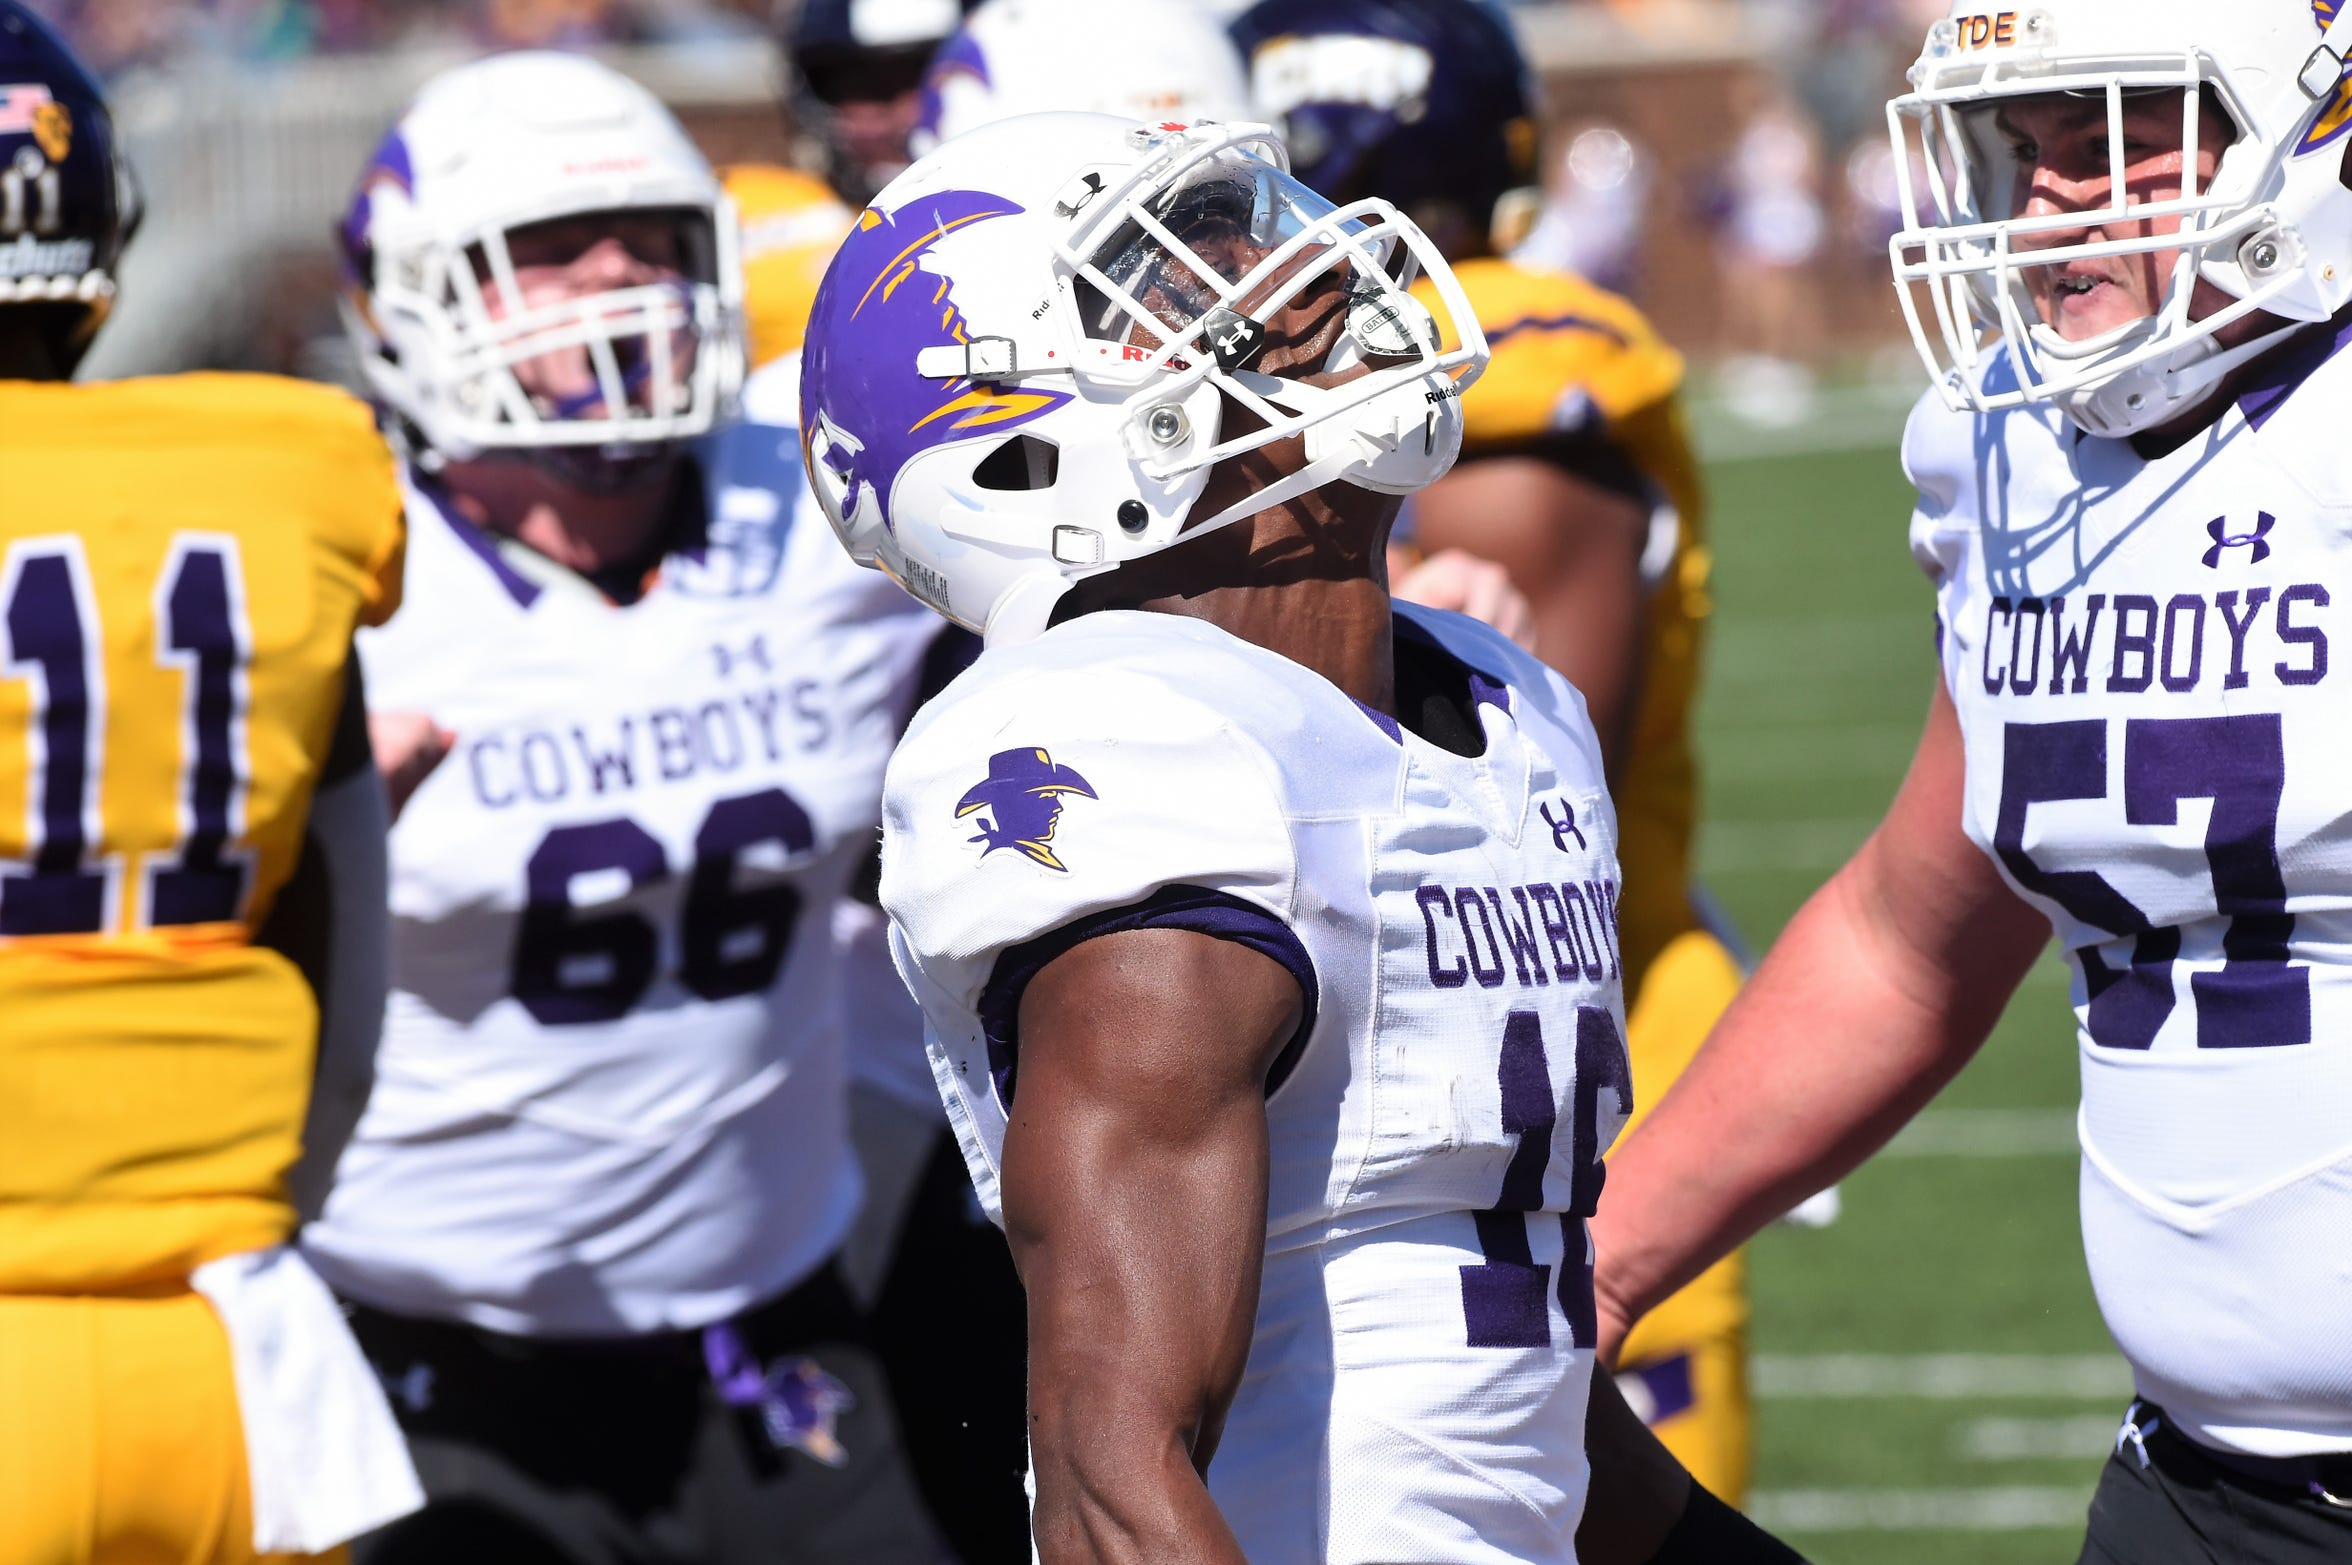 HSU running back Jaquan Hemphill celebrates scoring a touchdown at Mary Hardin-Baylor during the 2019 season. Hemphill broke six school records this past season including rushing yards in a game, career rushing touchdowns, career touchdowns, rushing attempts in a game, points in a career and longest rush.